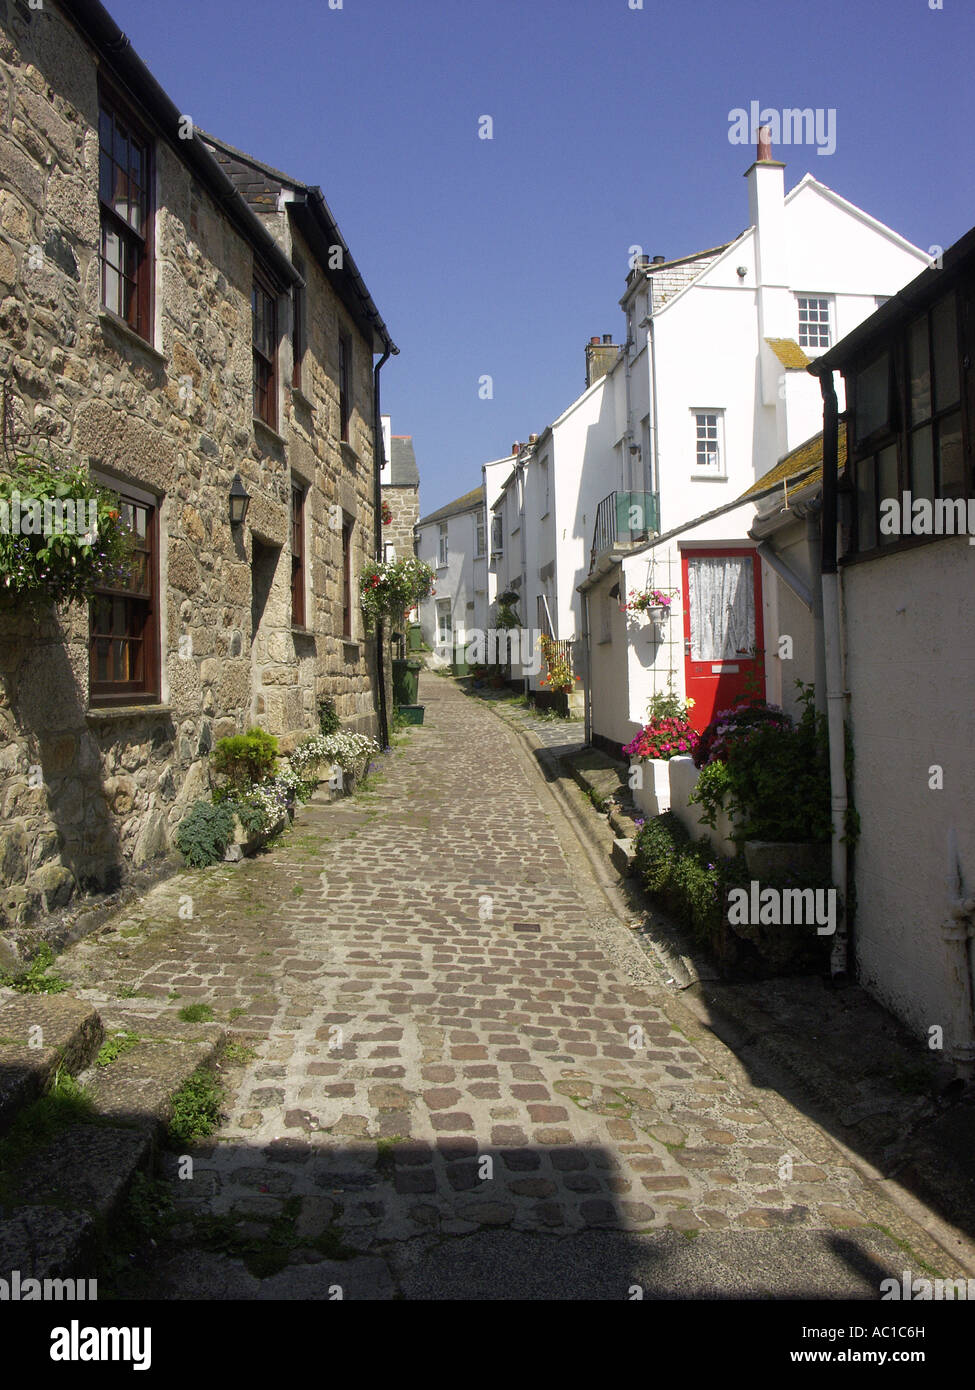 One of the many tiny back lanes in St Ives. - Stock Image